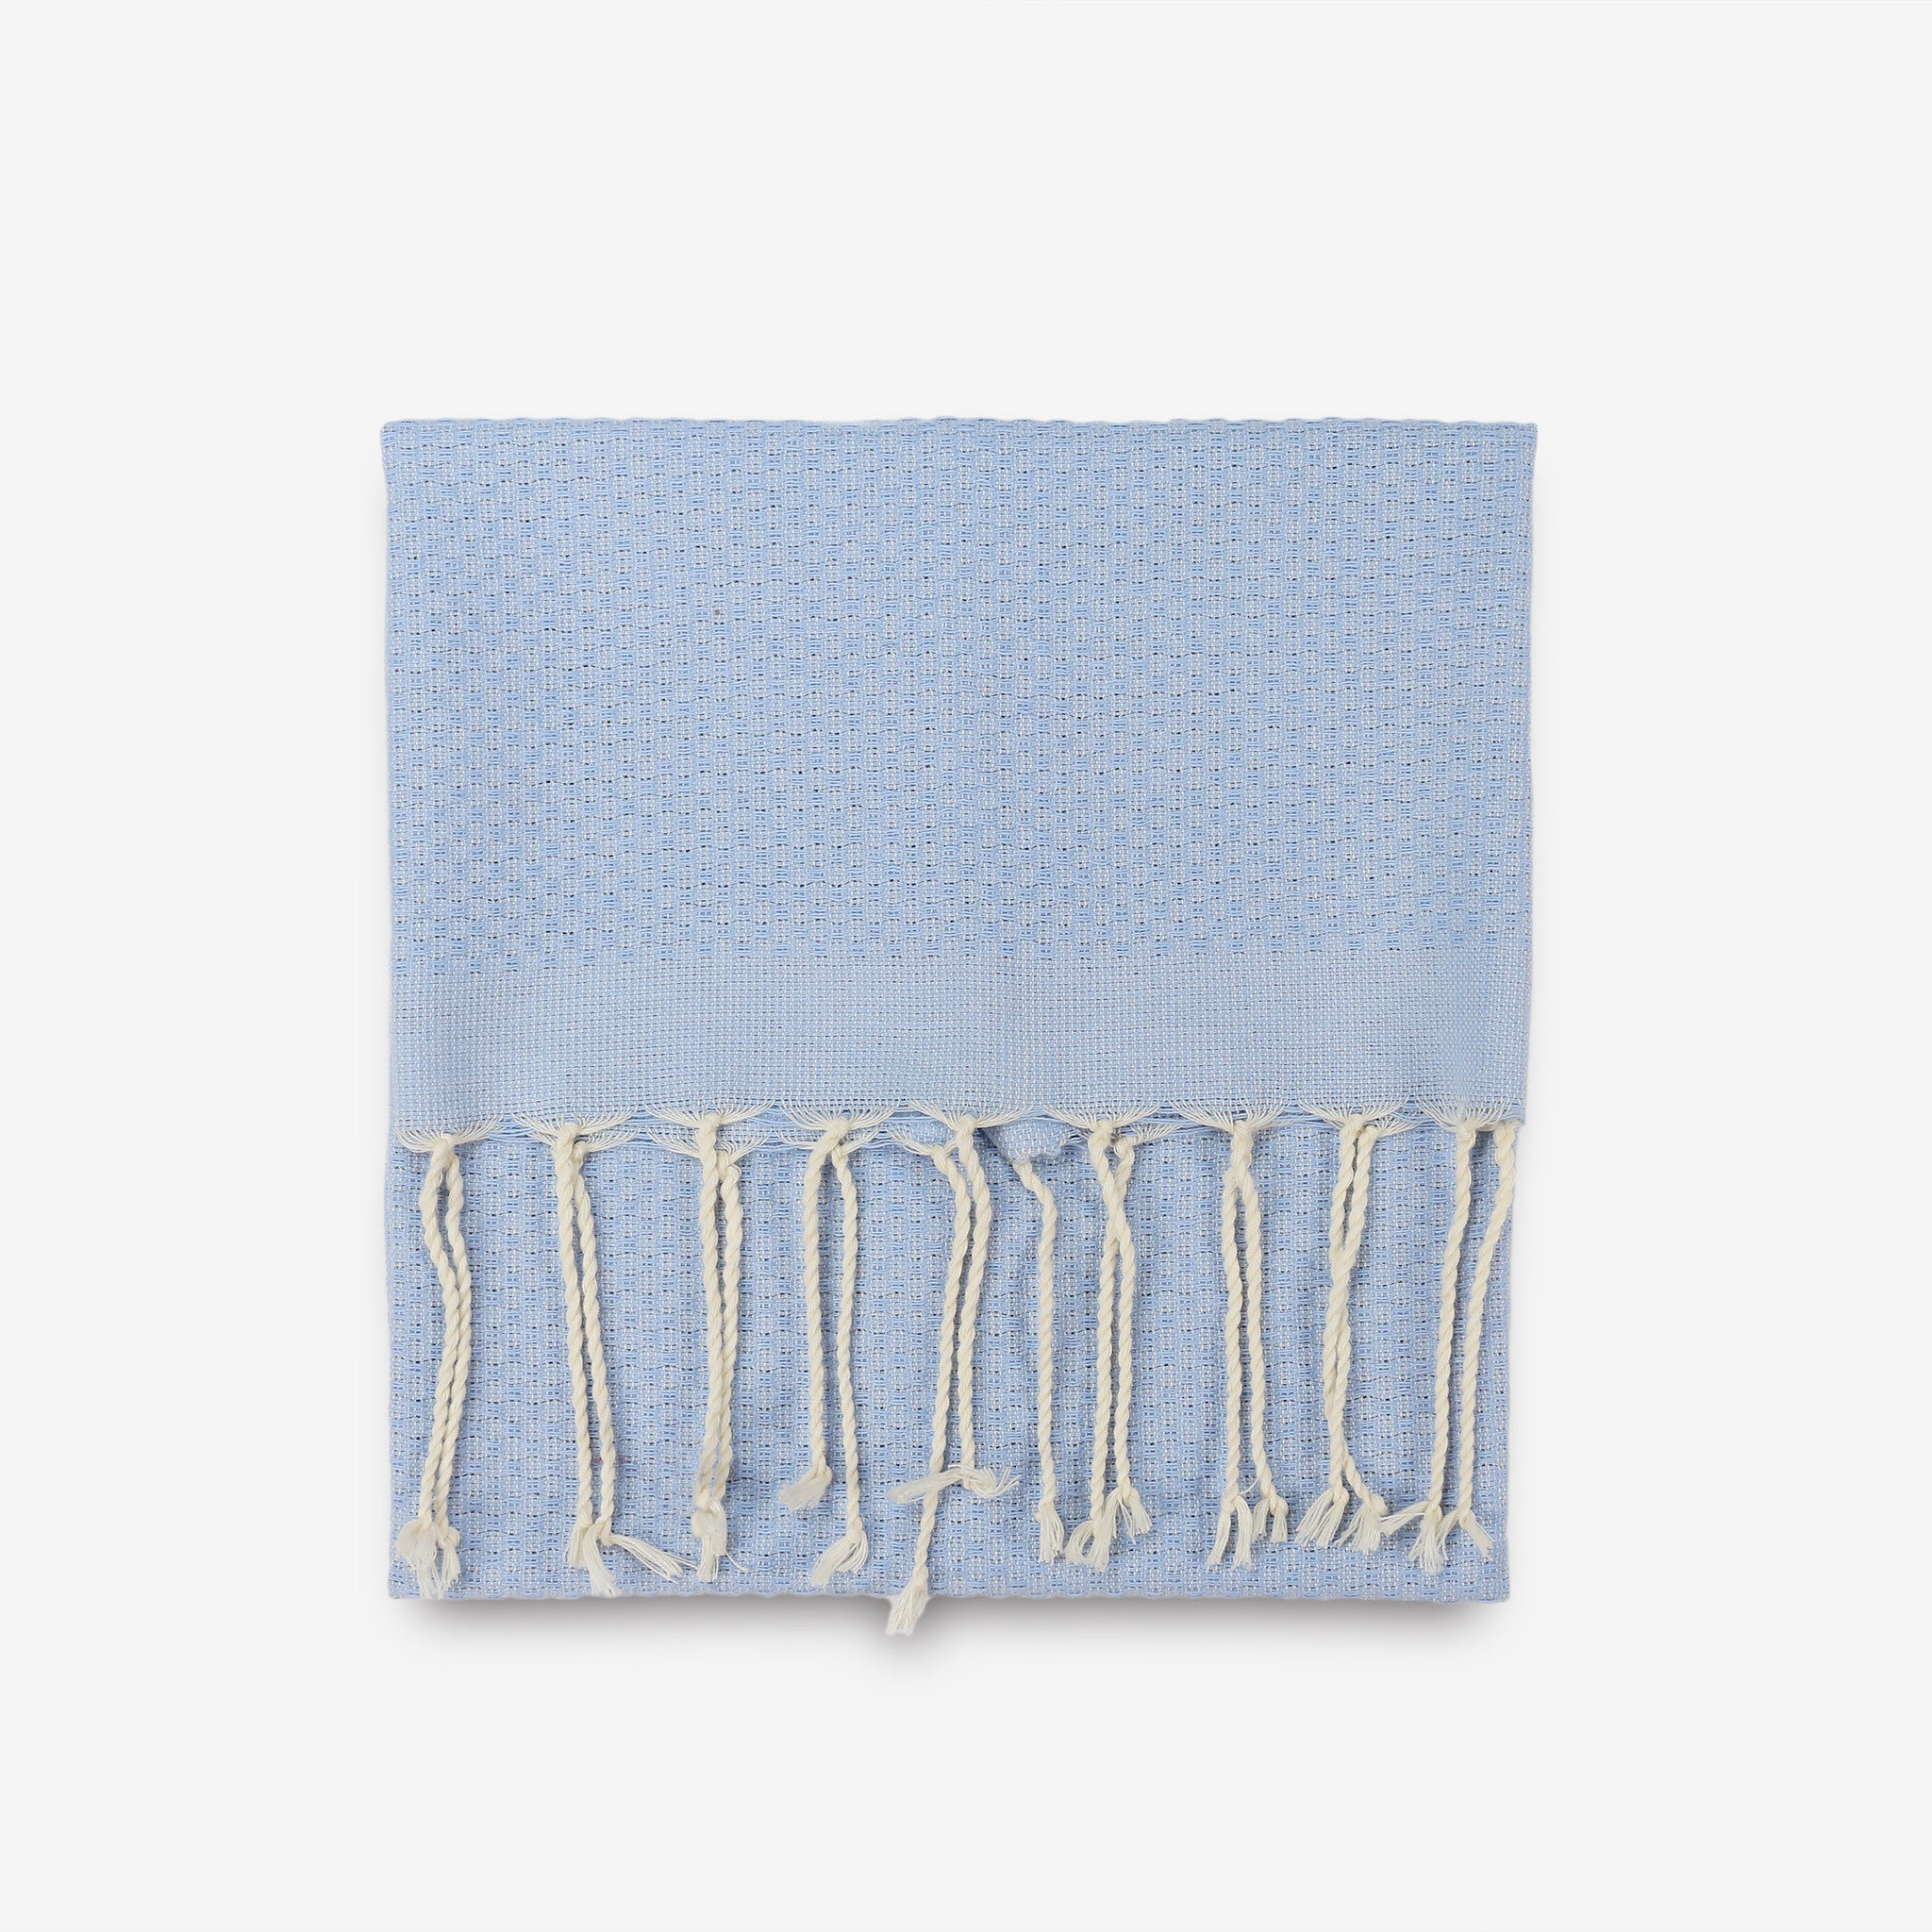 Solid Hand Towel in light blue